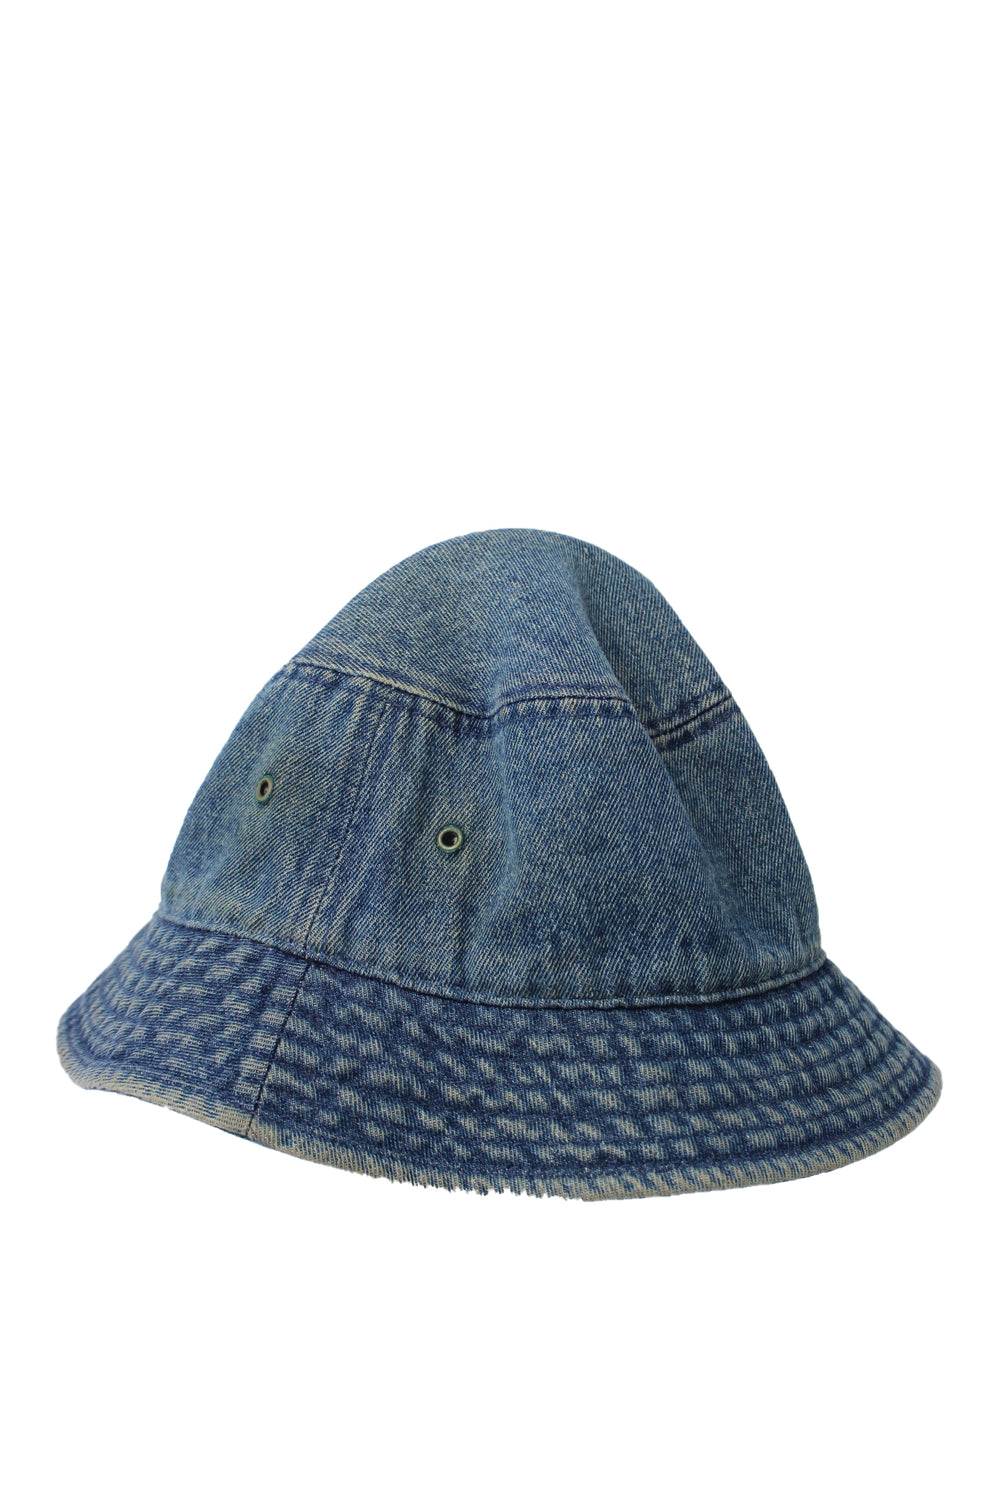 "newhattan indigo denim bucket hat. features double eyelet vents at sides. brim measures ~ 2.25""."